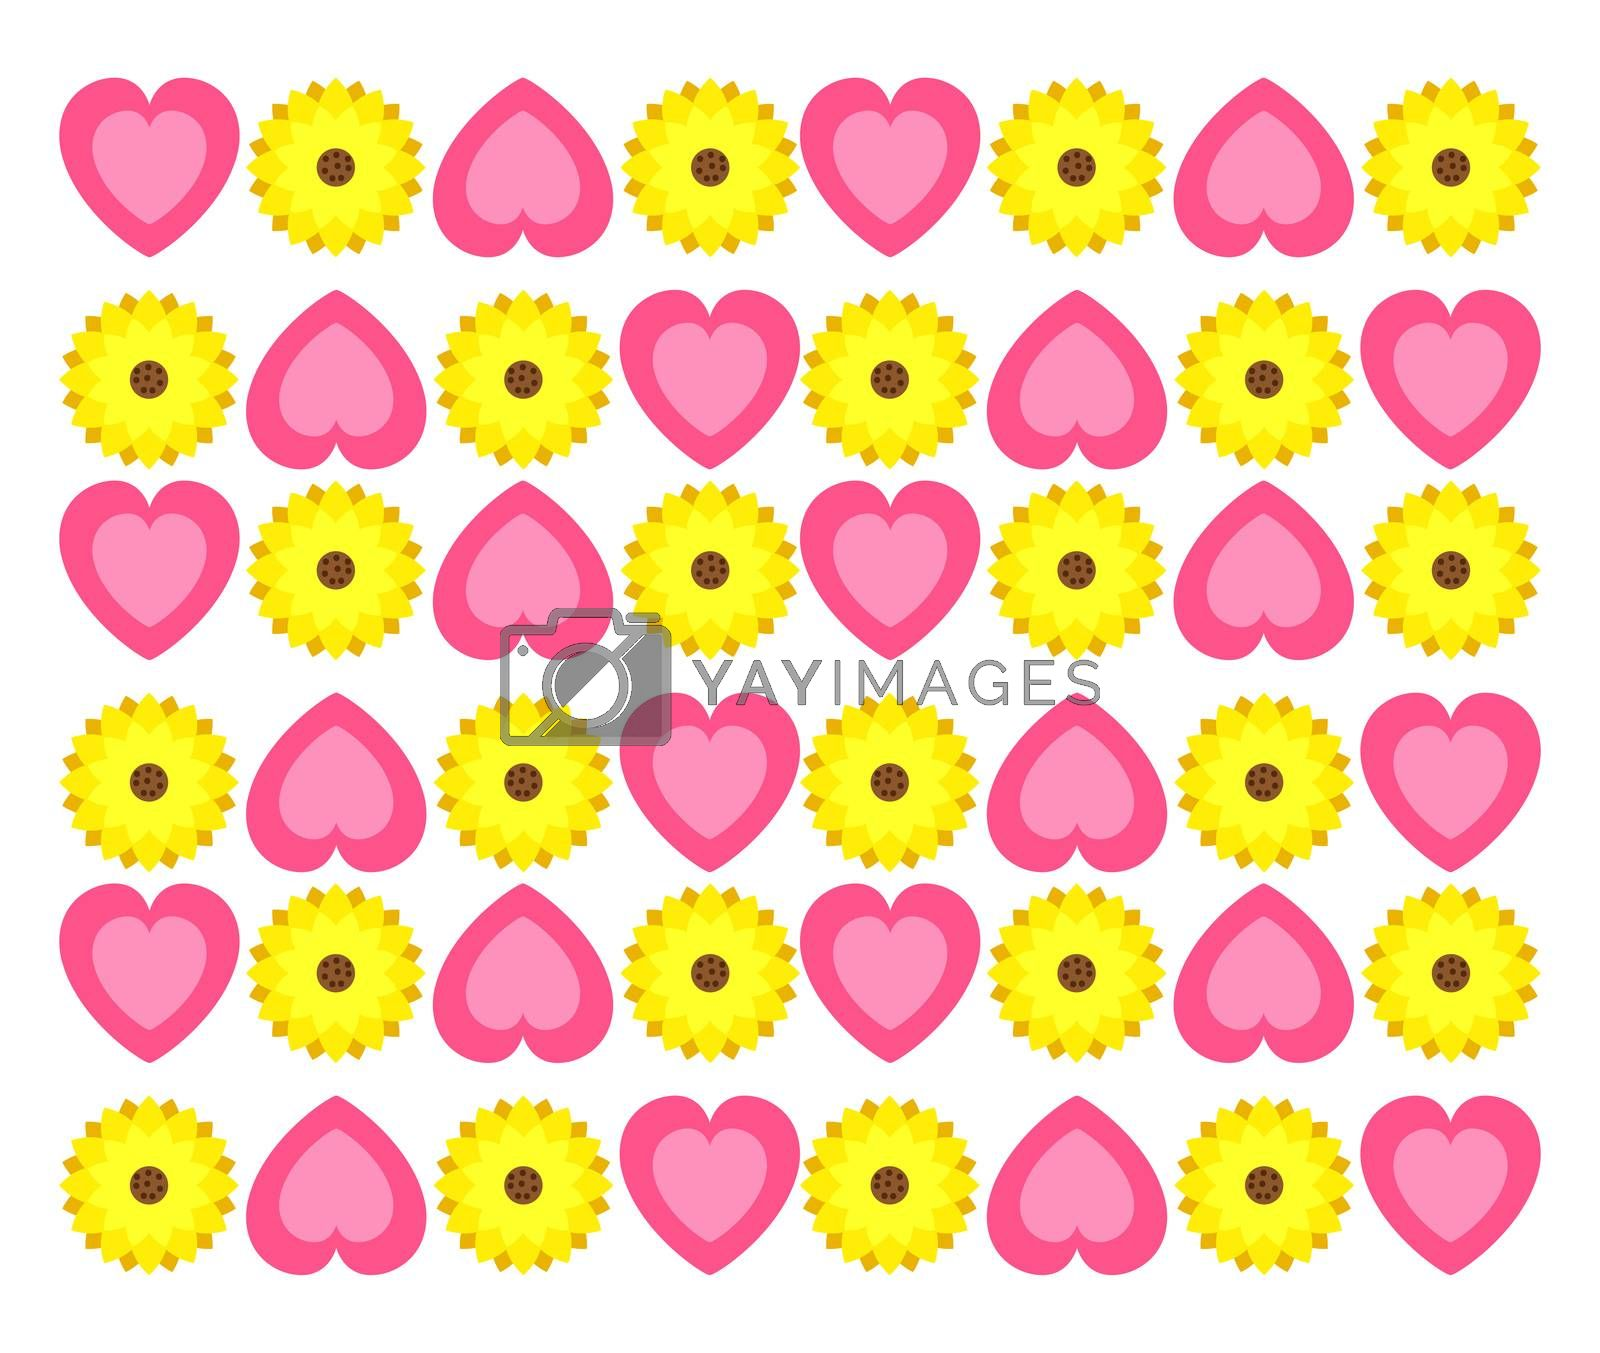 Hearts pattern, illustration, vector on white background